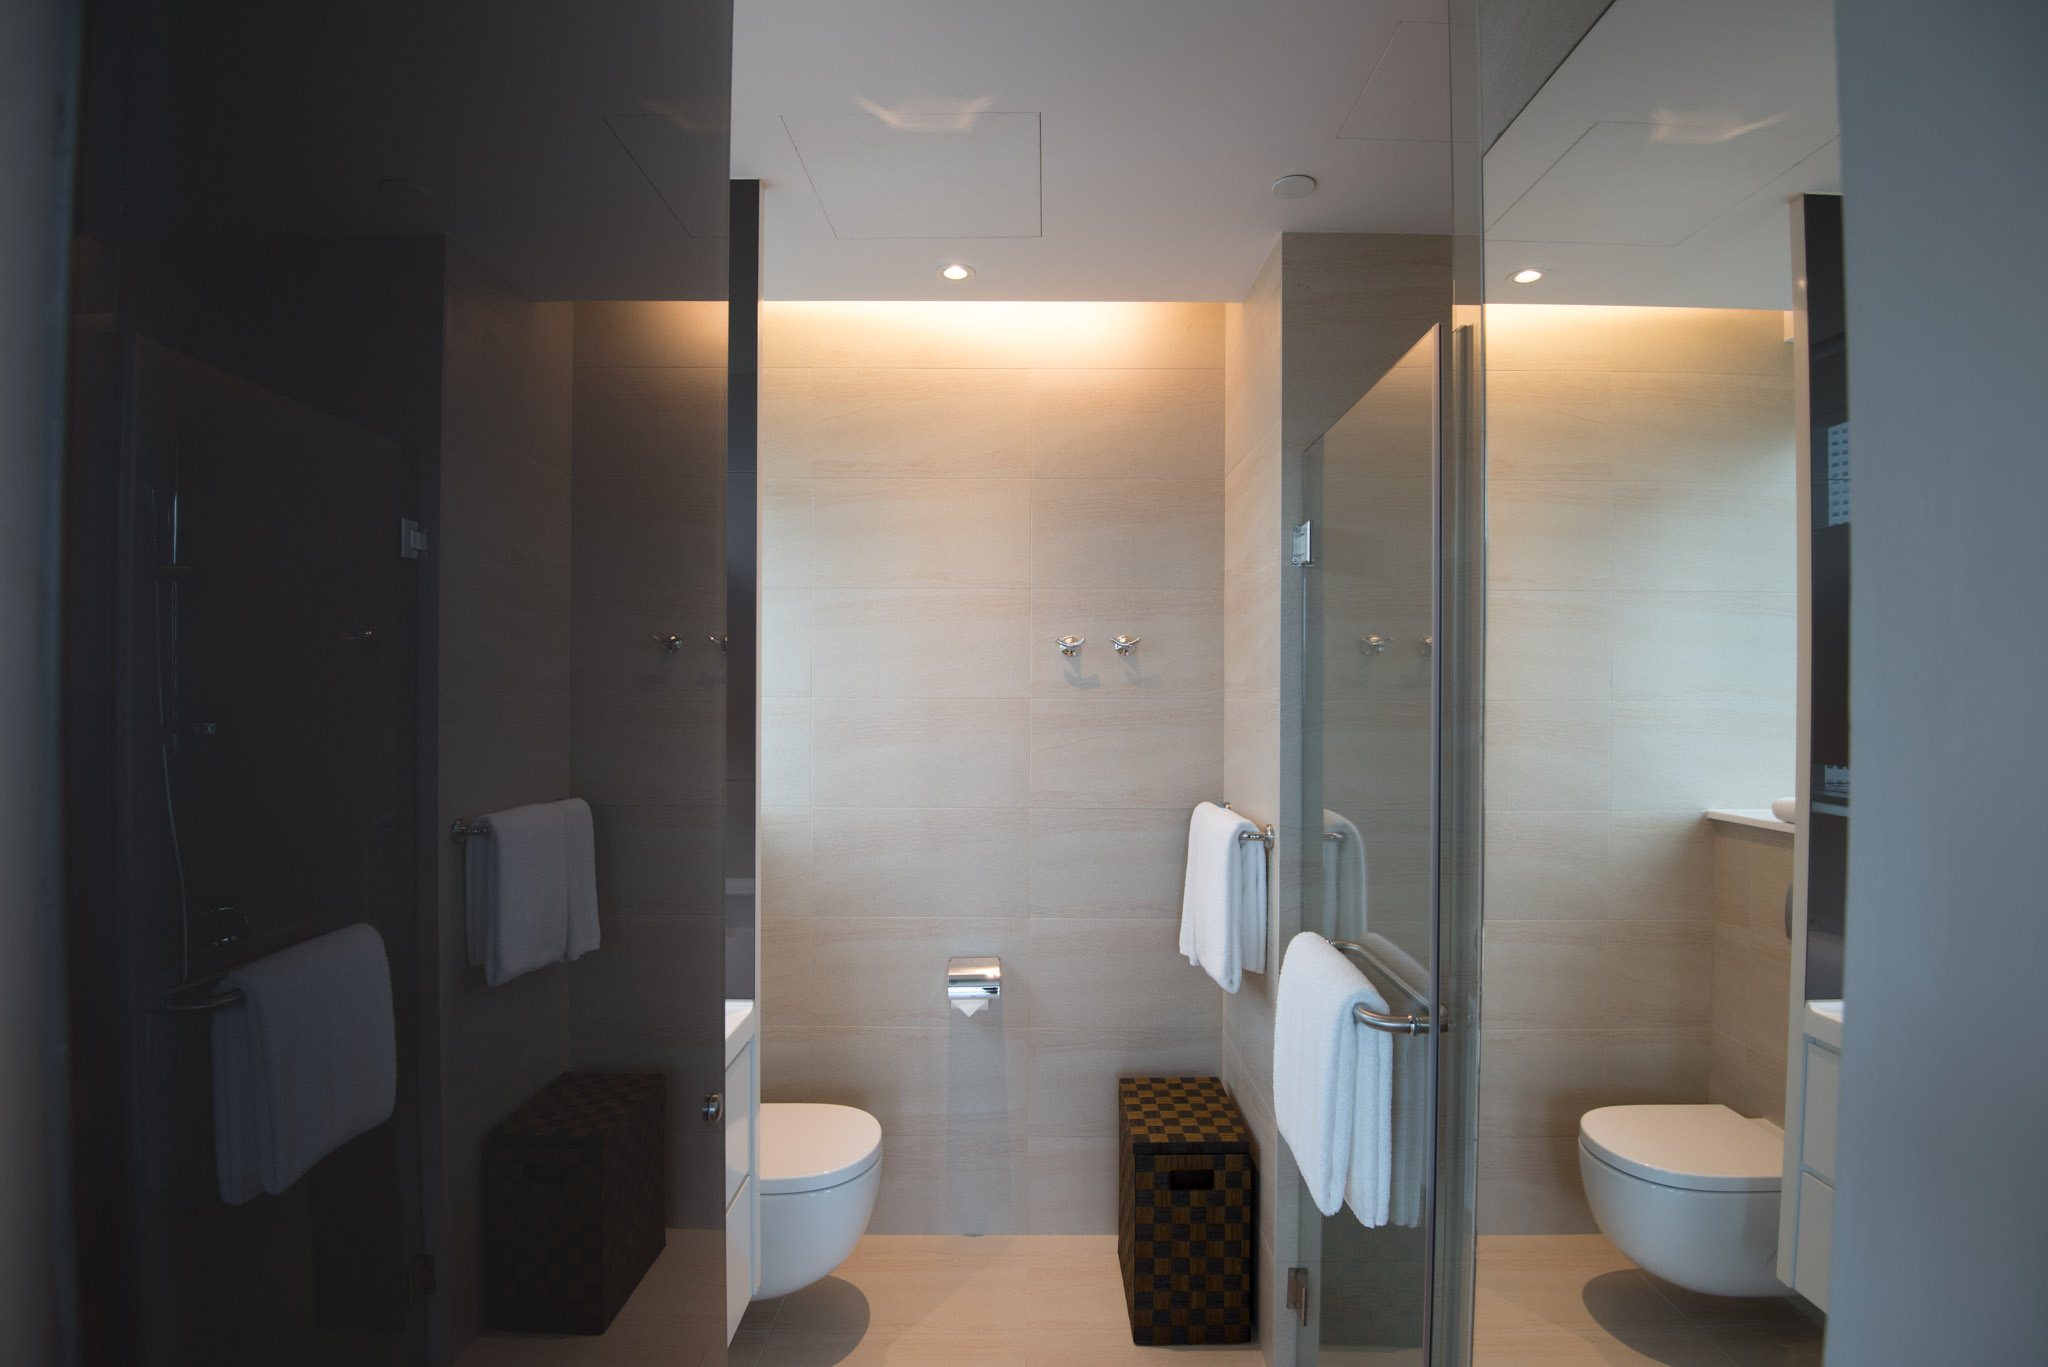 Bathroom of theOne Bedroom Premium Suite of the Pan Pacific Serviced Suites Beach Road